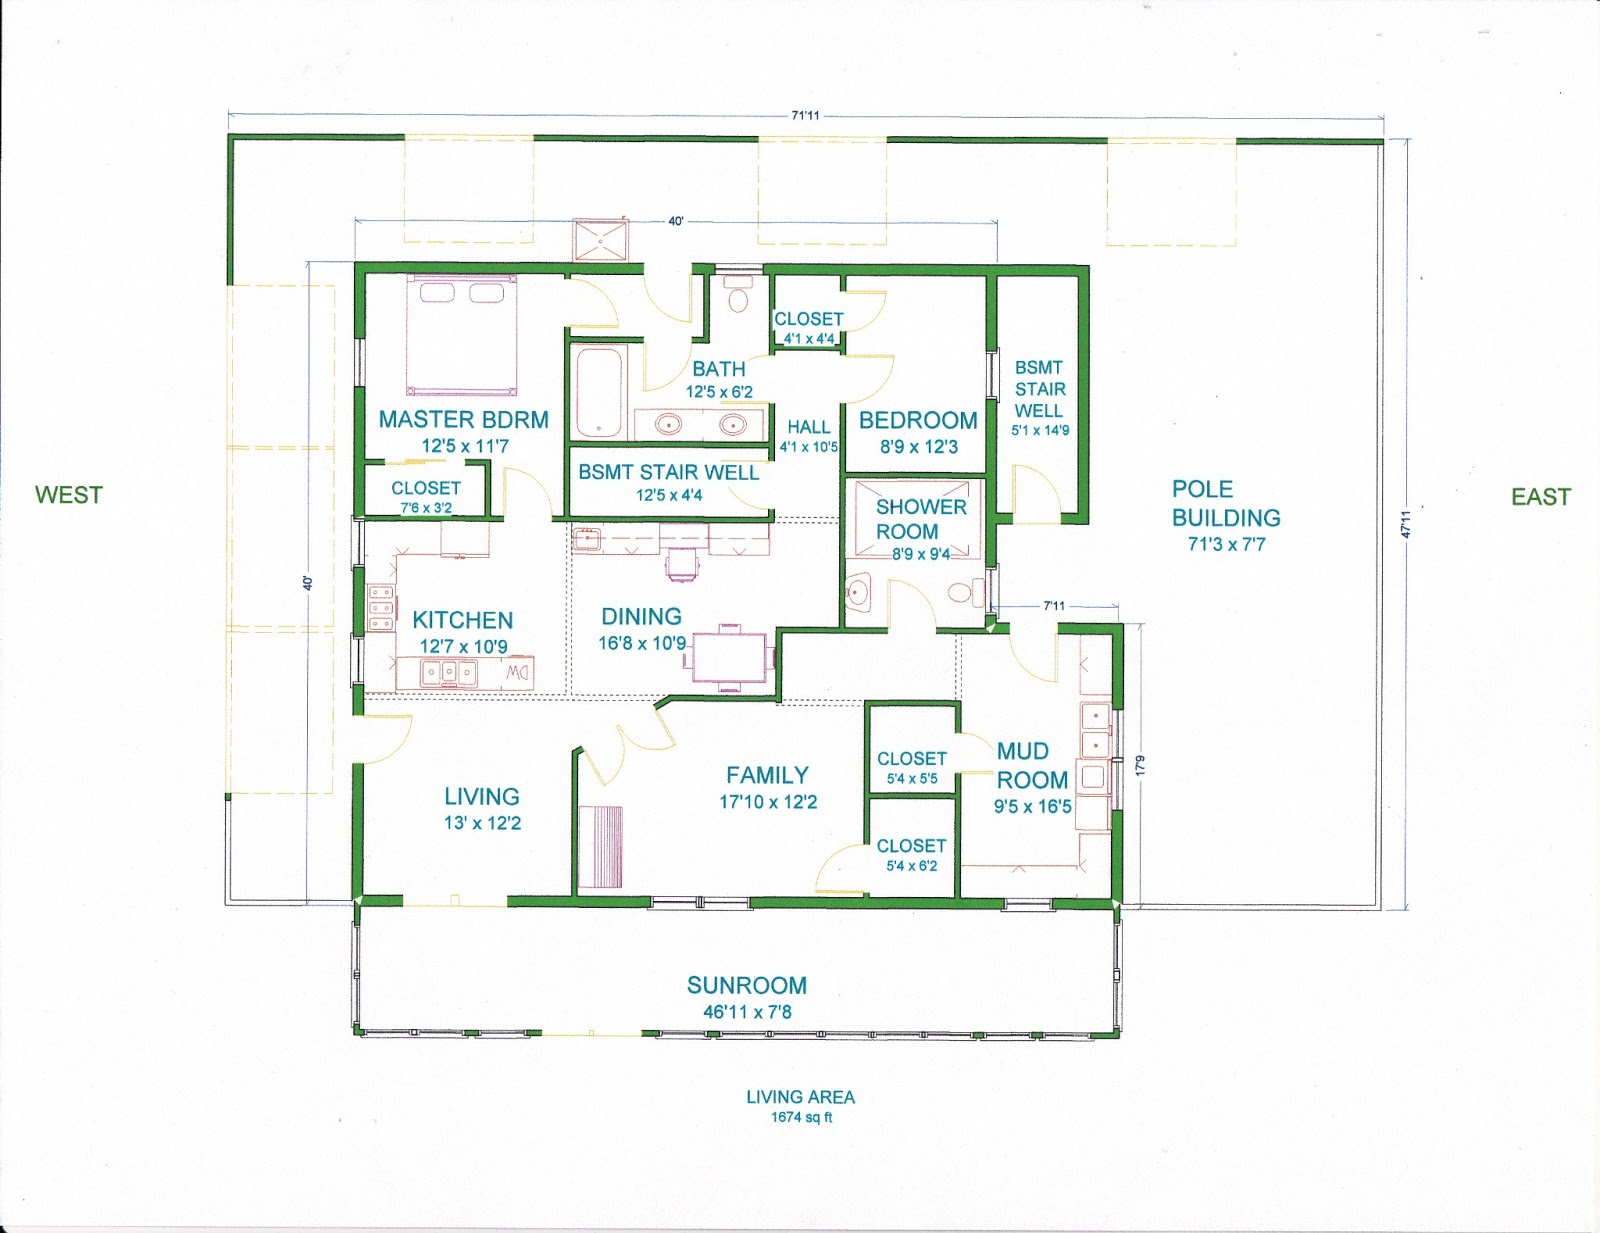 barn style house plans with silo house design plans barn style house plans with silo